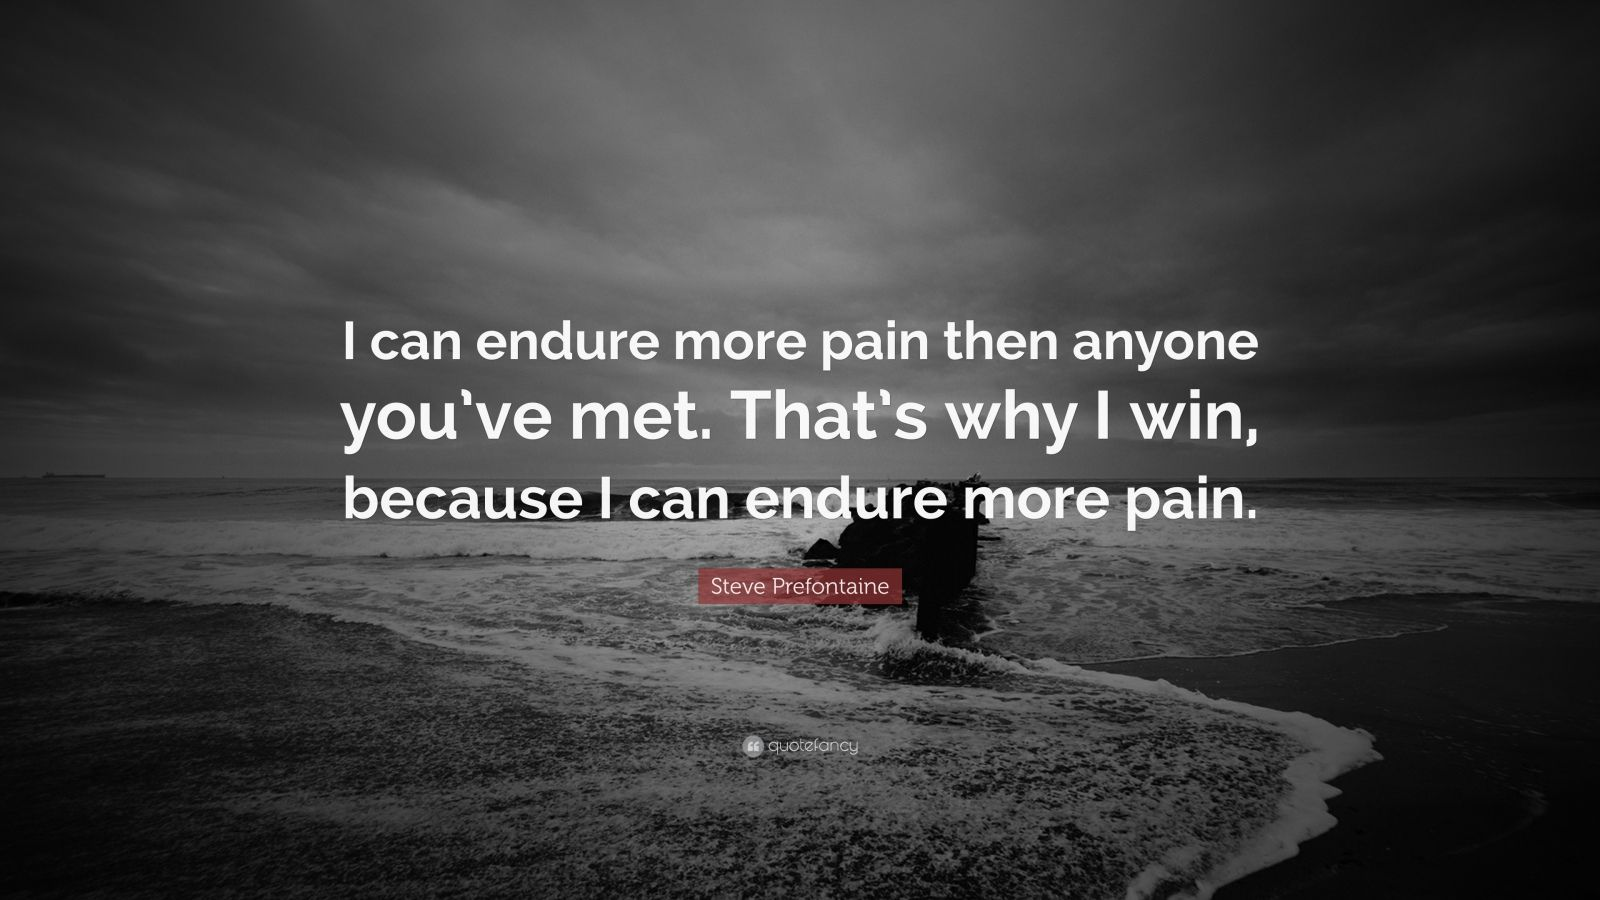 """Steve Prefontaine Quote: """"I can endure more pain then anyone you've met. That's why I win, because I can endure more pain."""""""